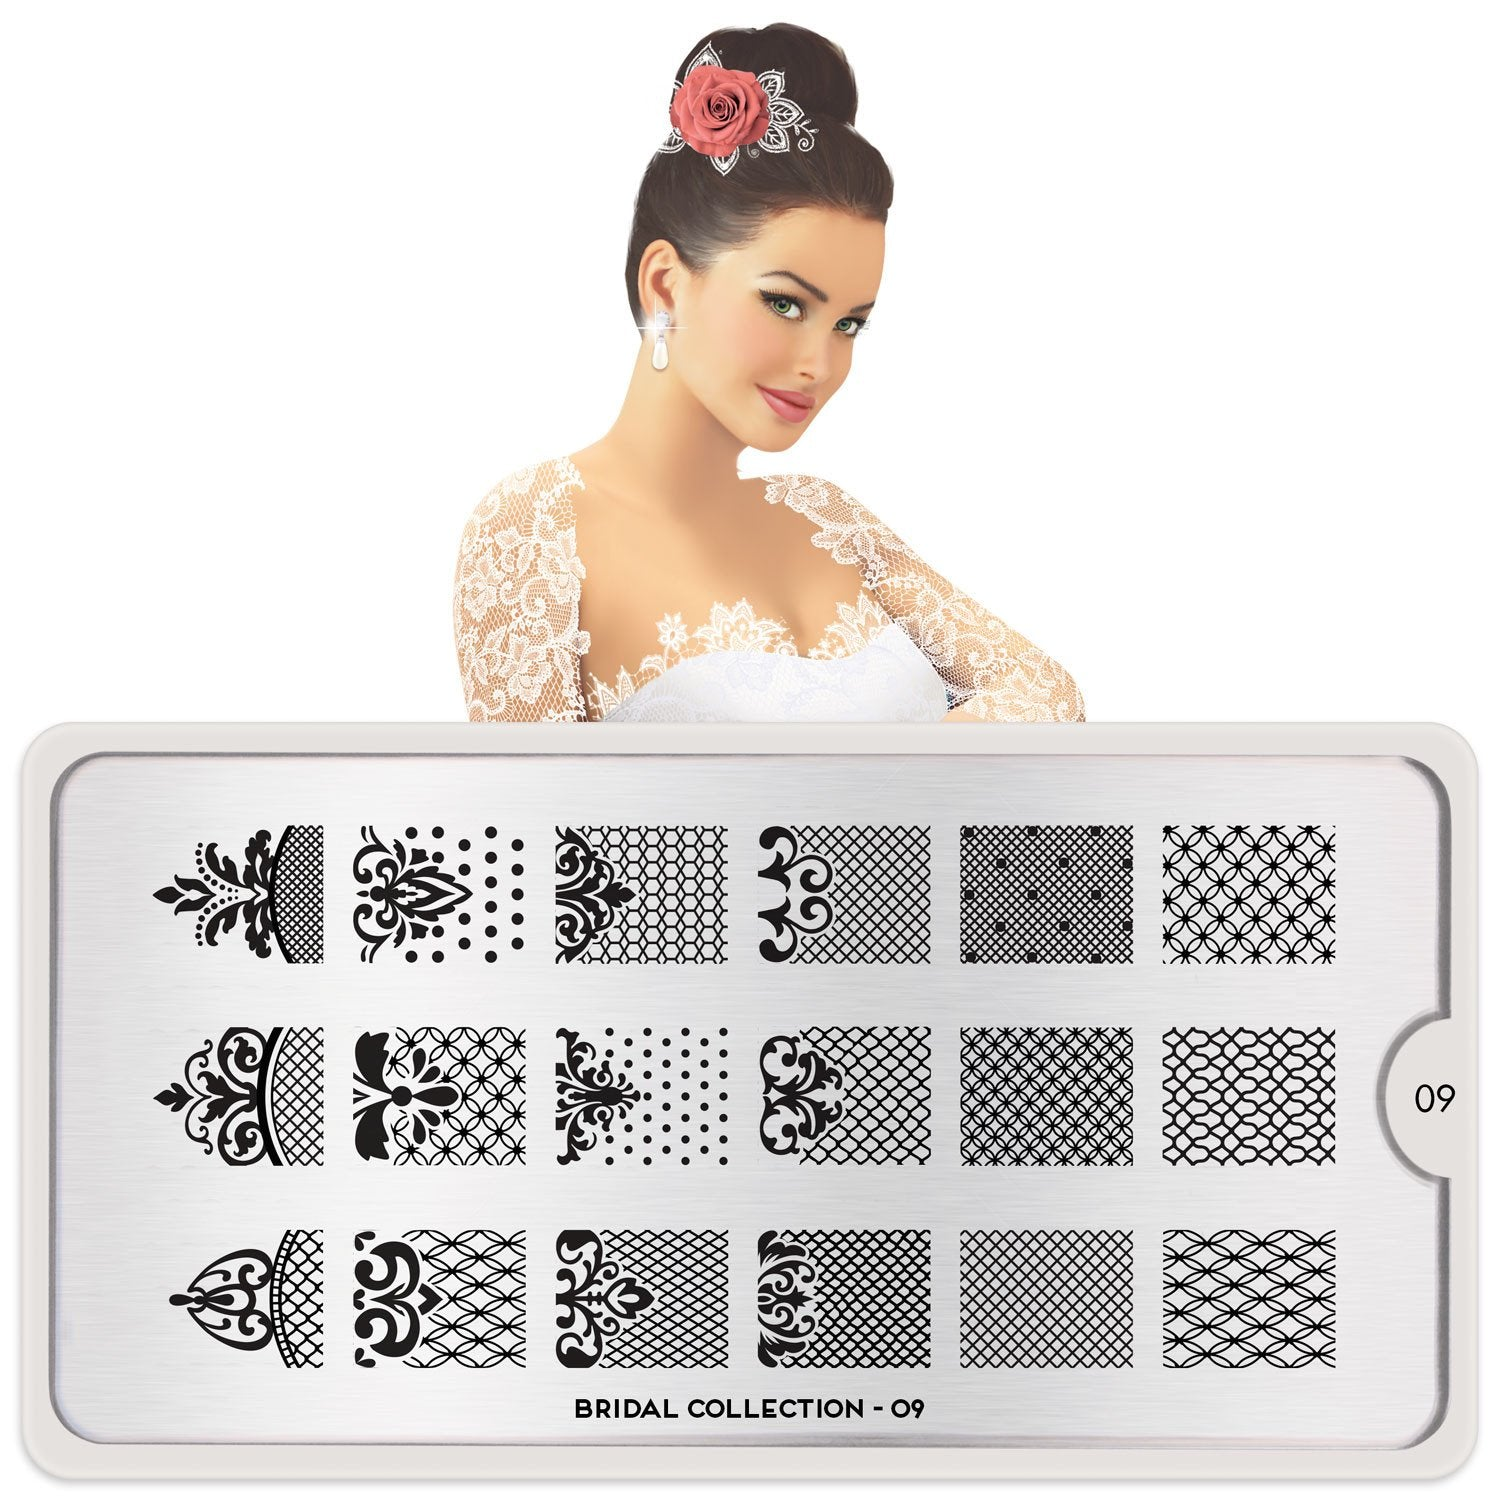 MoYou London Bridal 09 stamping plate